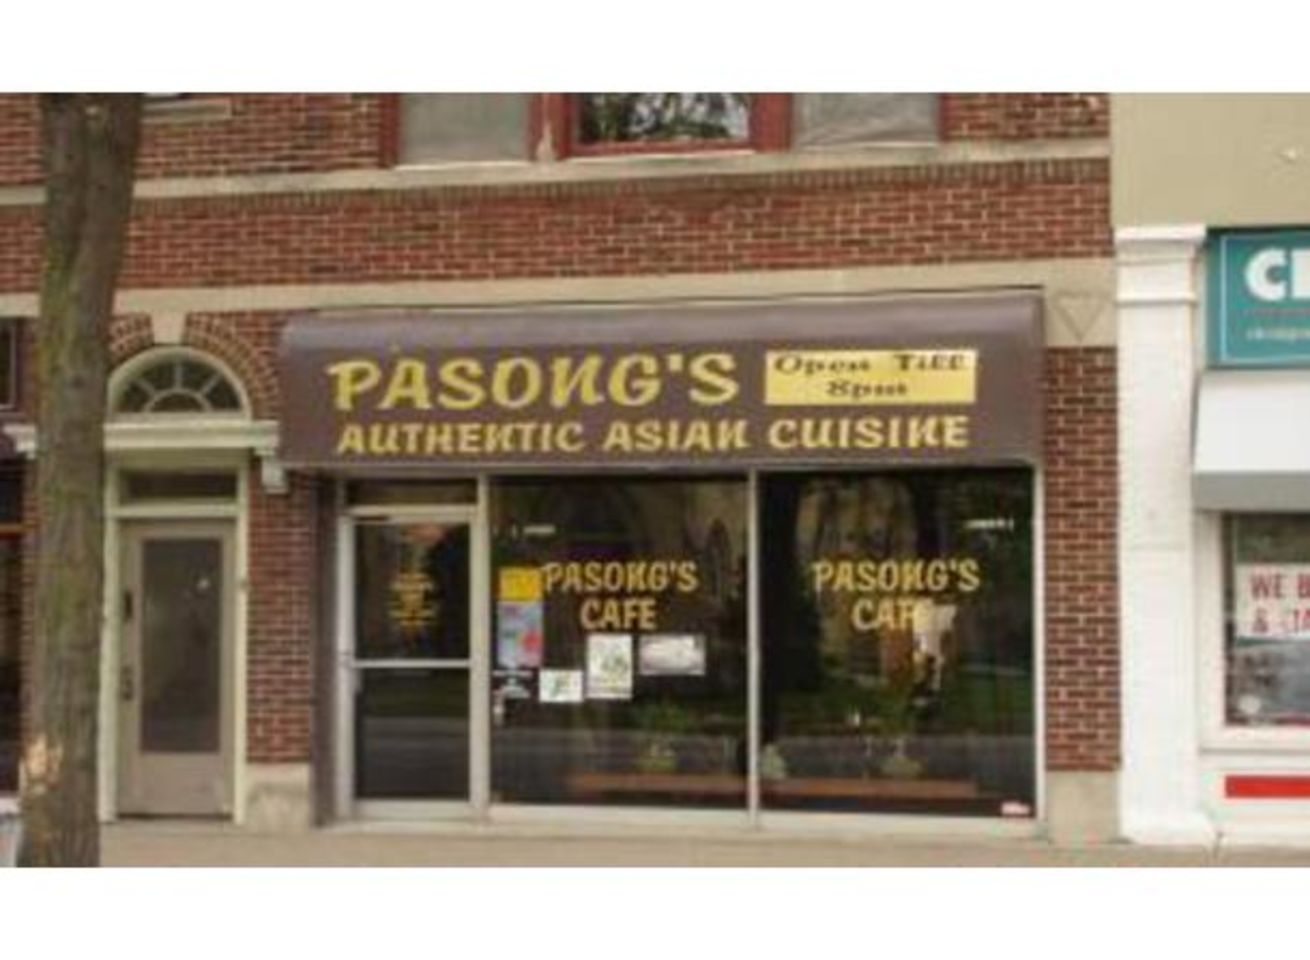 A photo of Pasong's Cafe